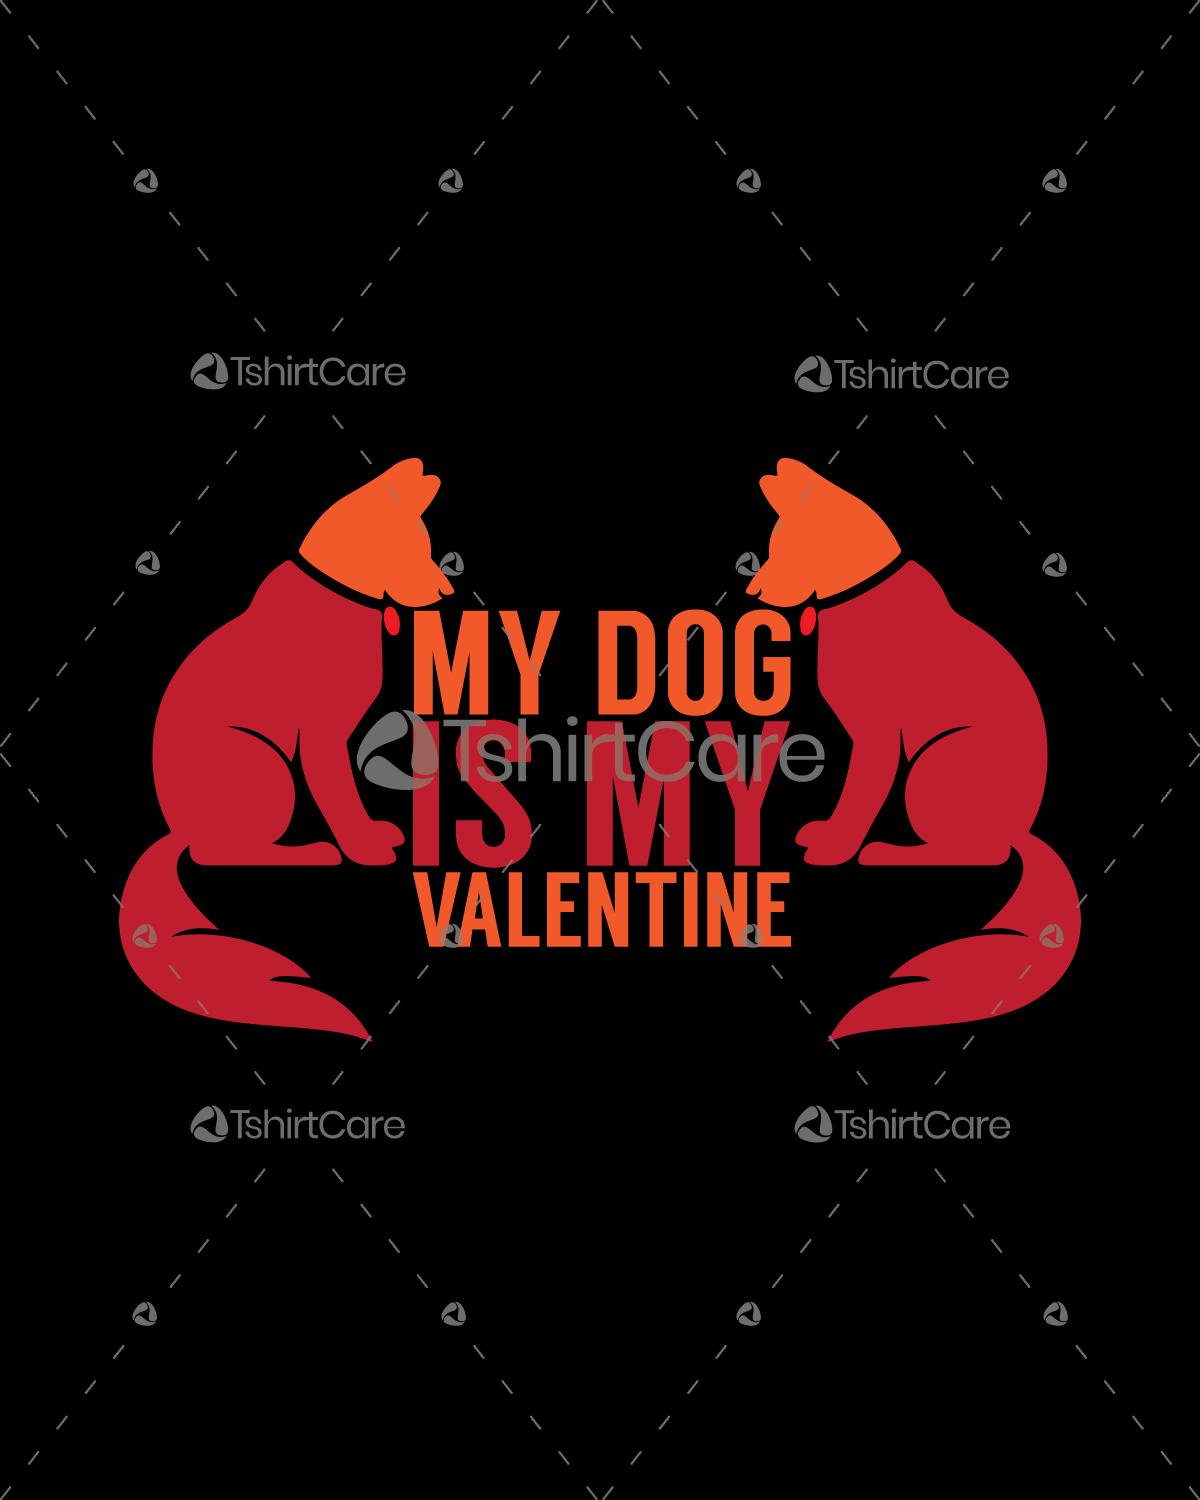 My dog is my valentine T shirt Design for Gift